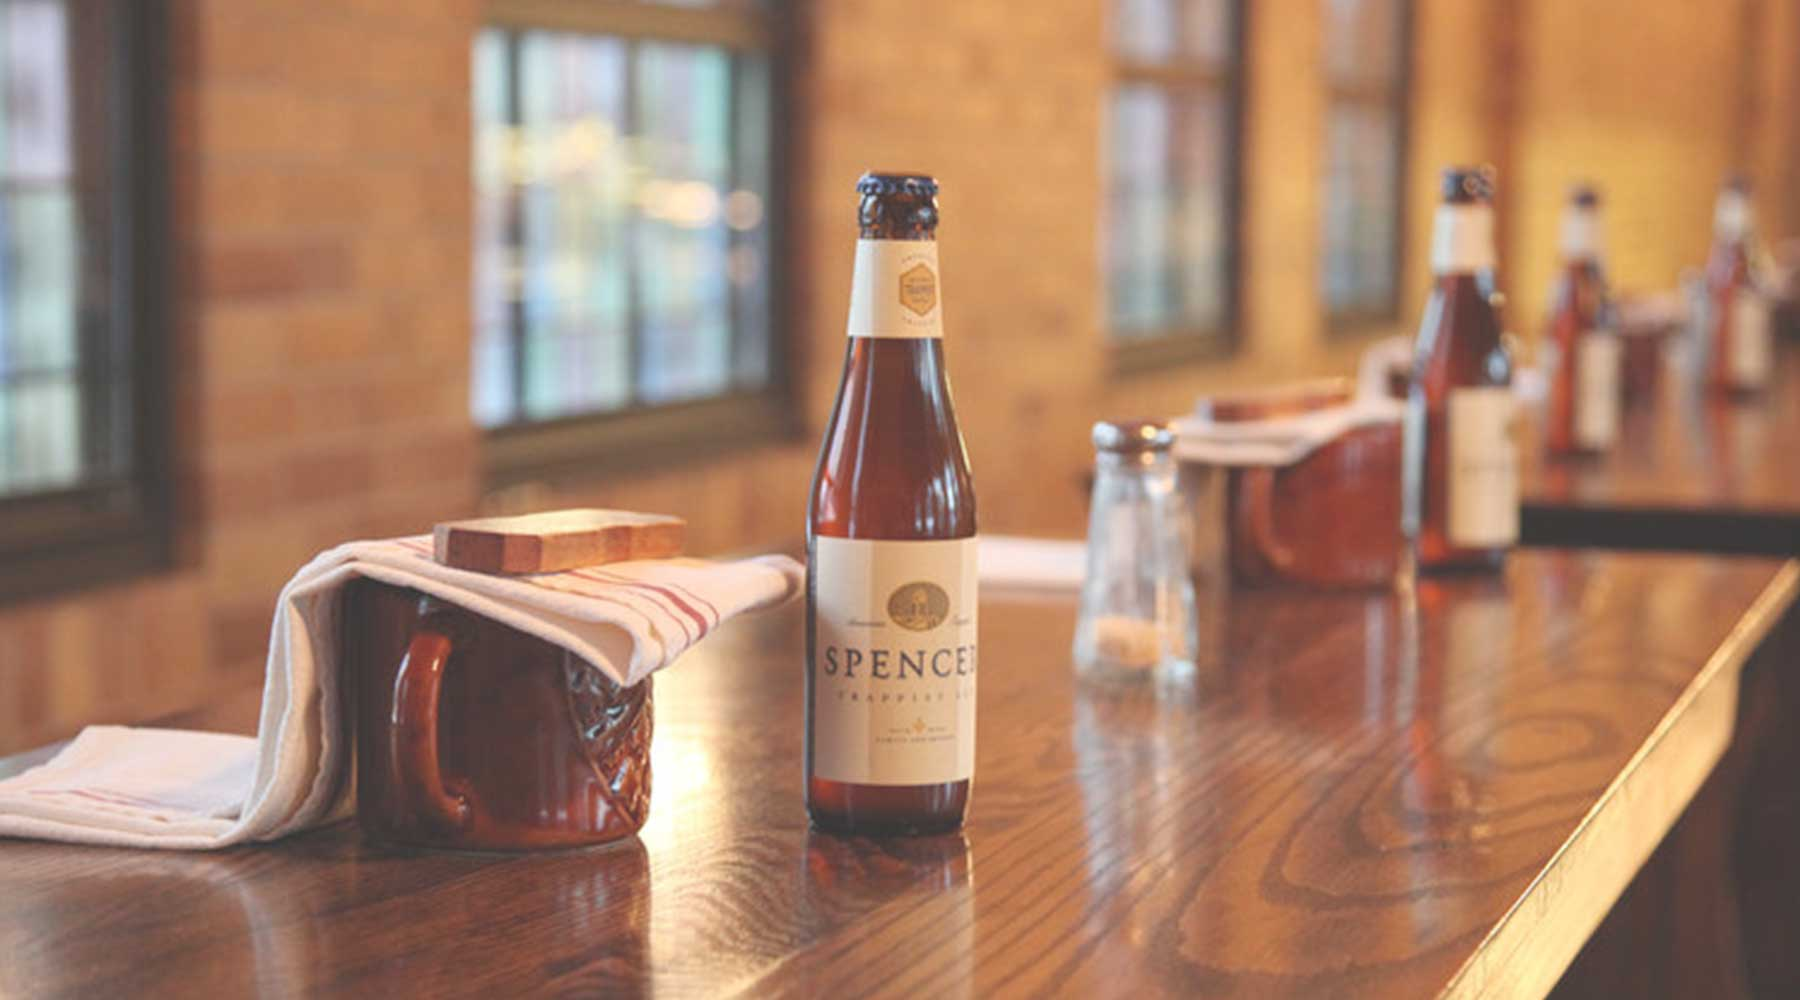 Spencer Brewery | Just Wine